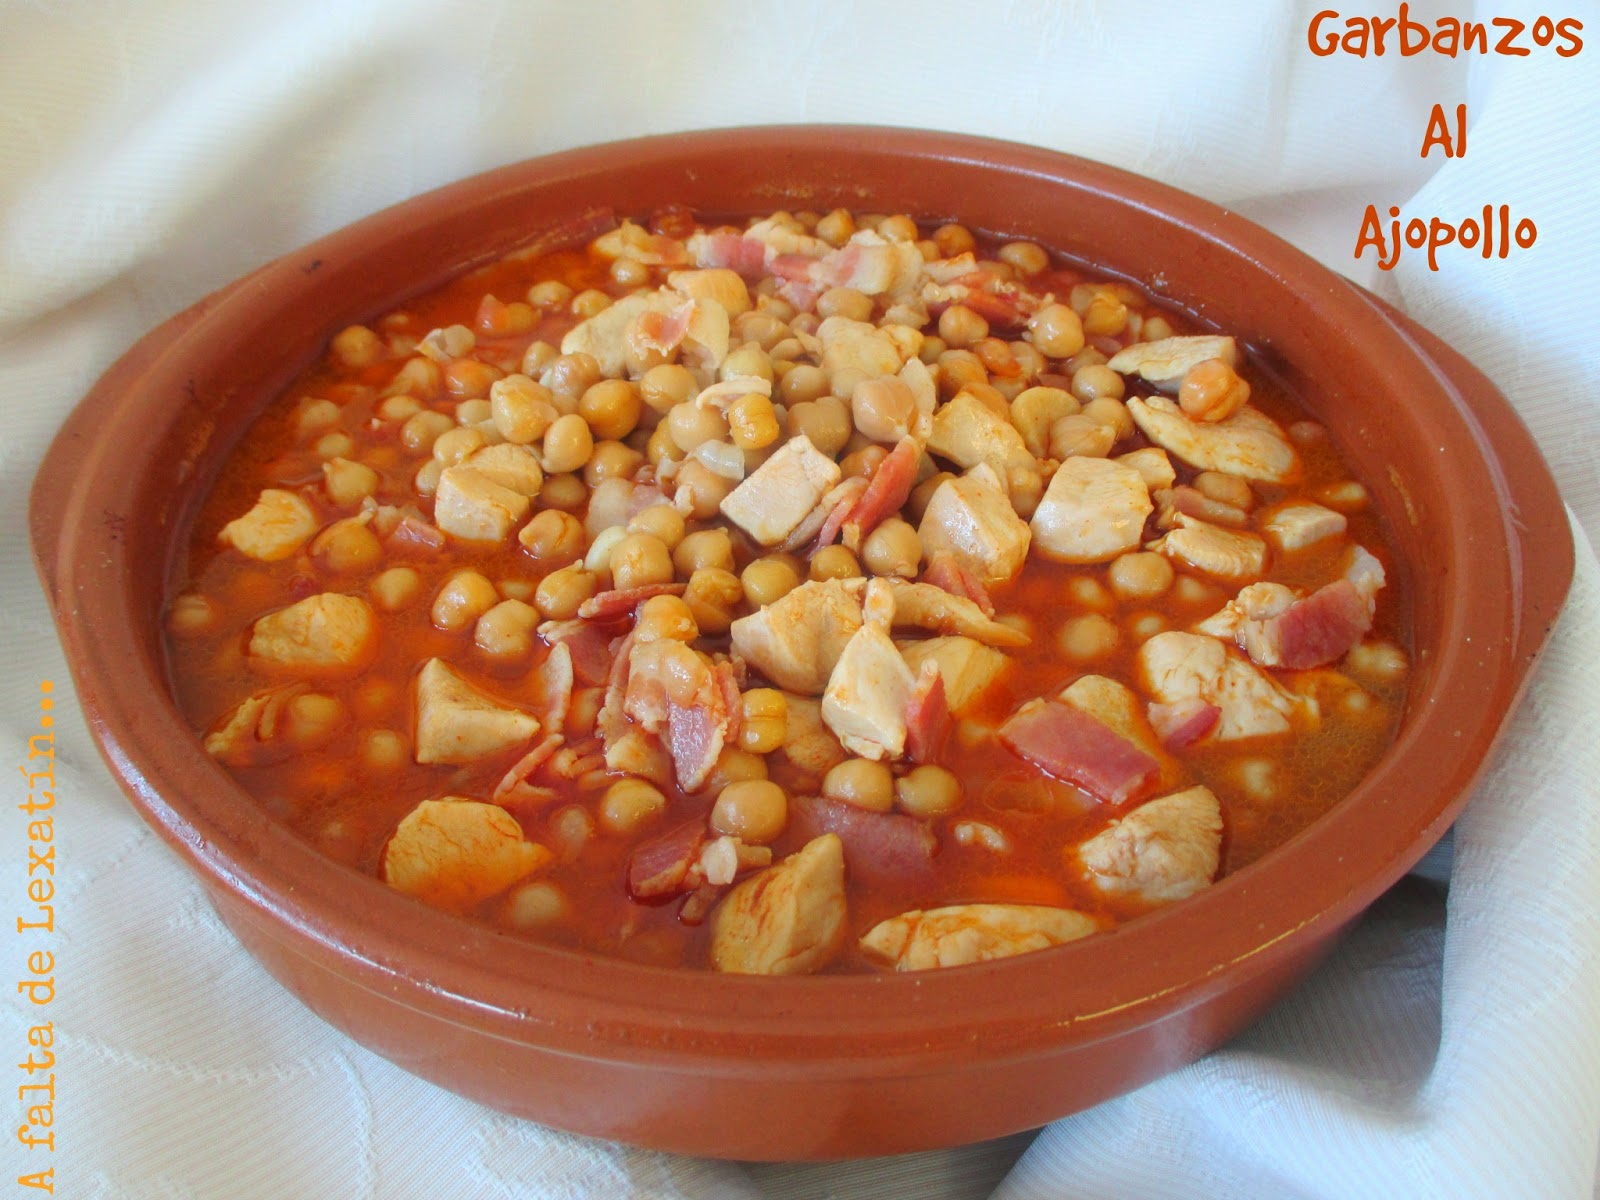 Garbanzos al Ajopollo